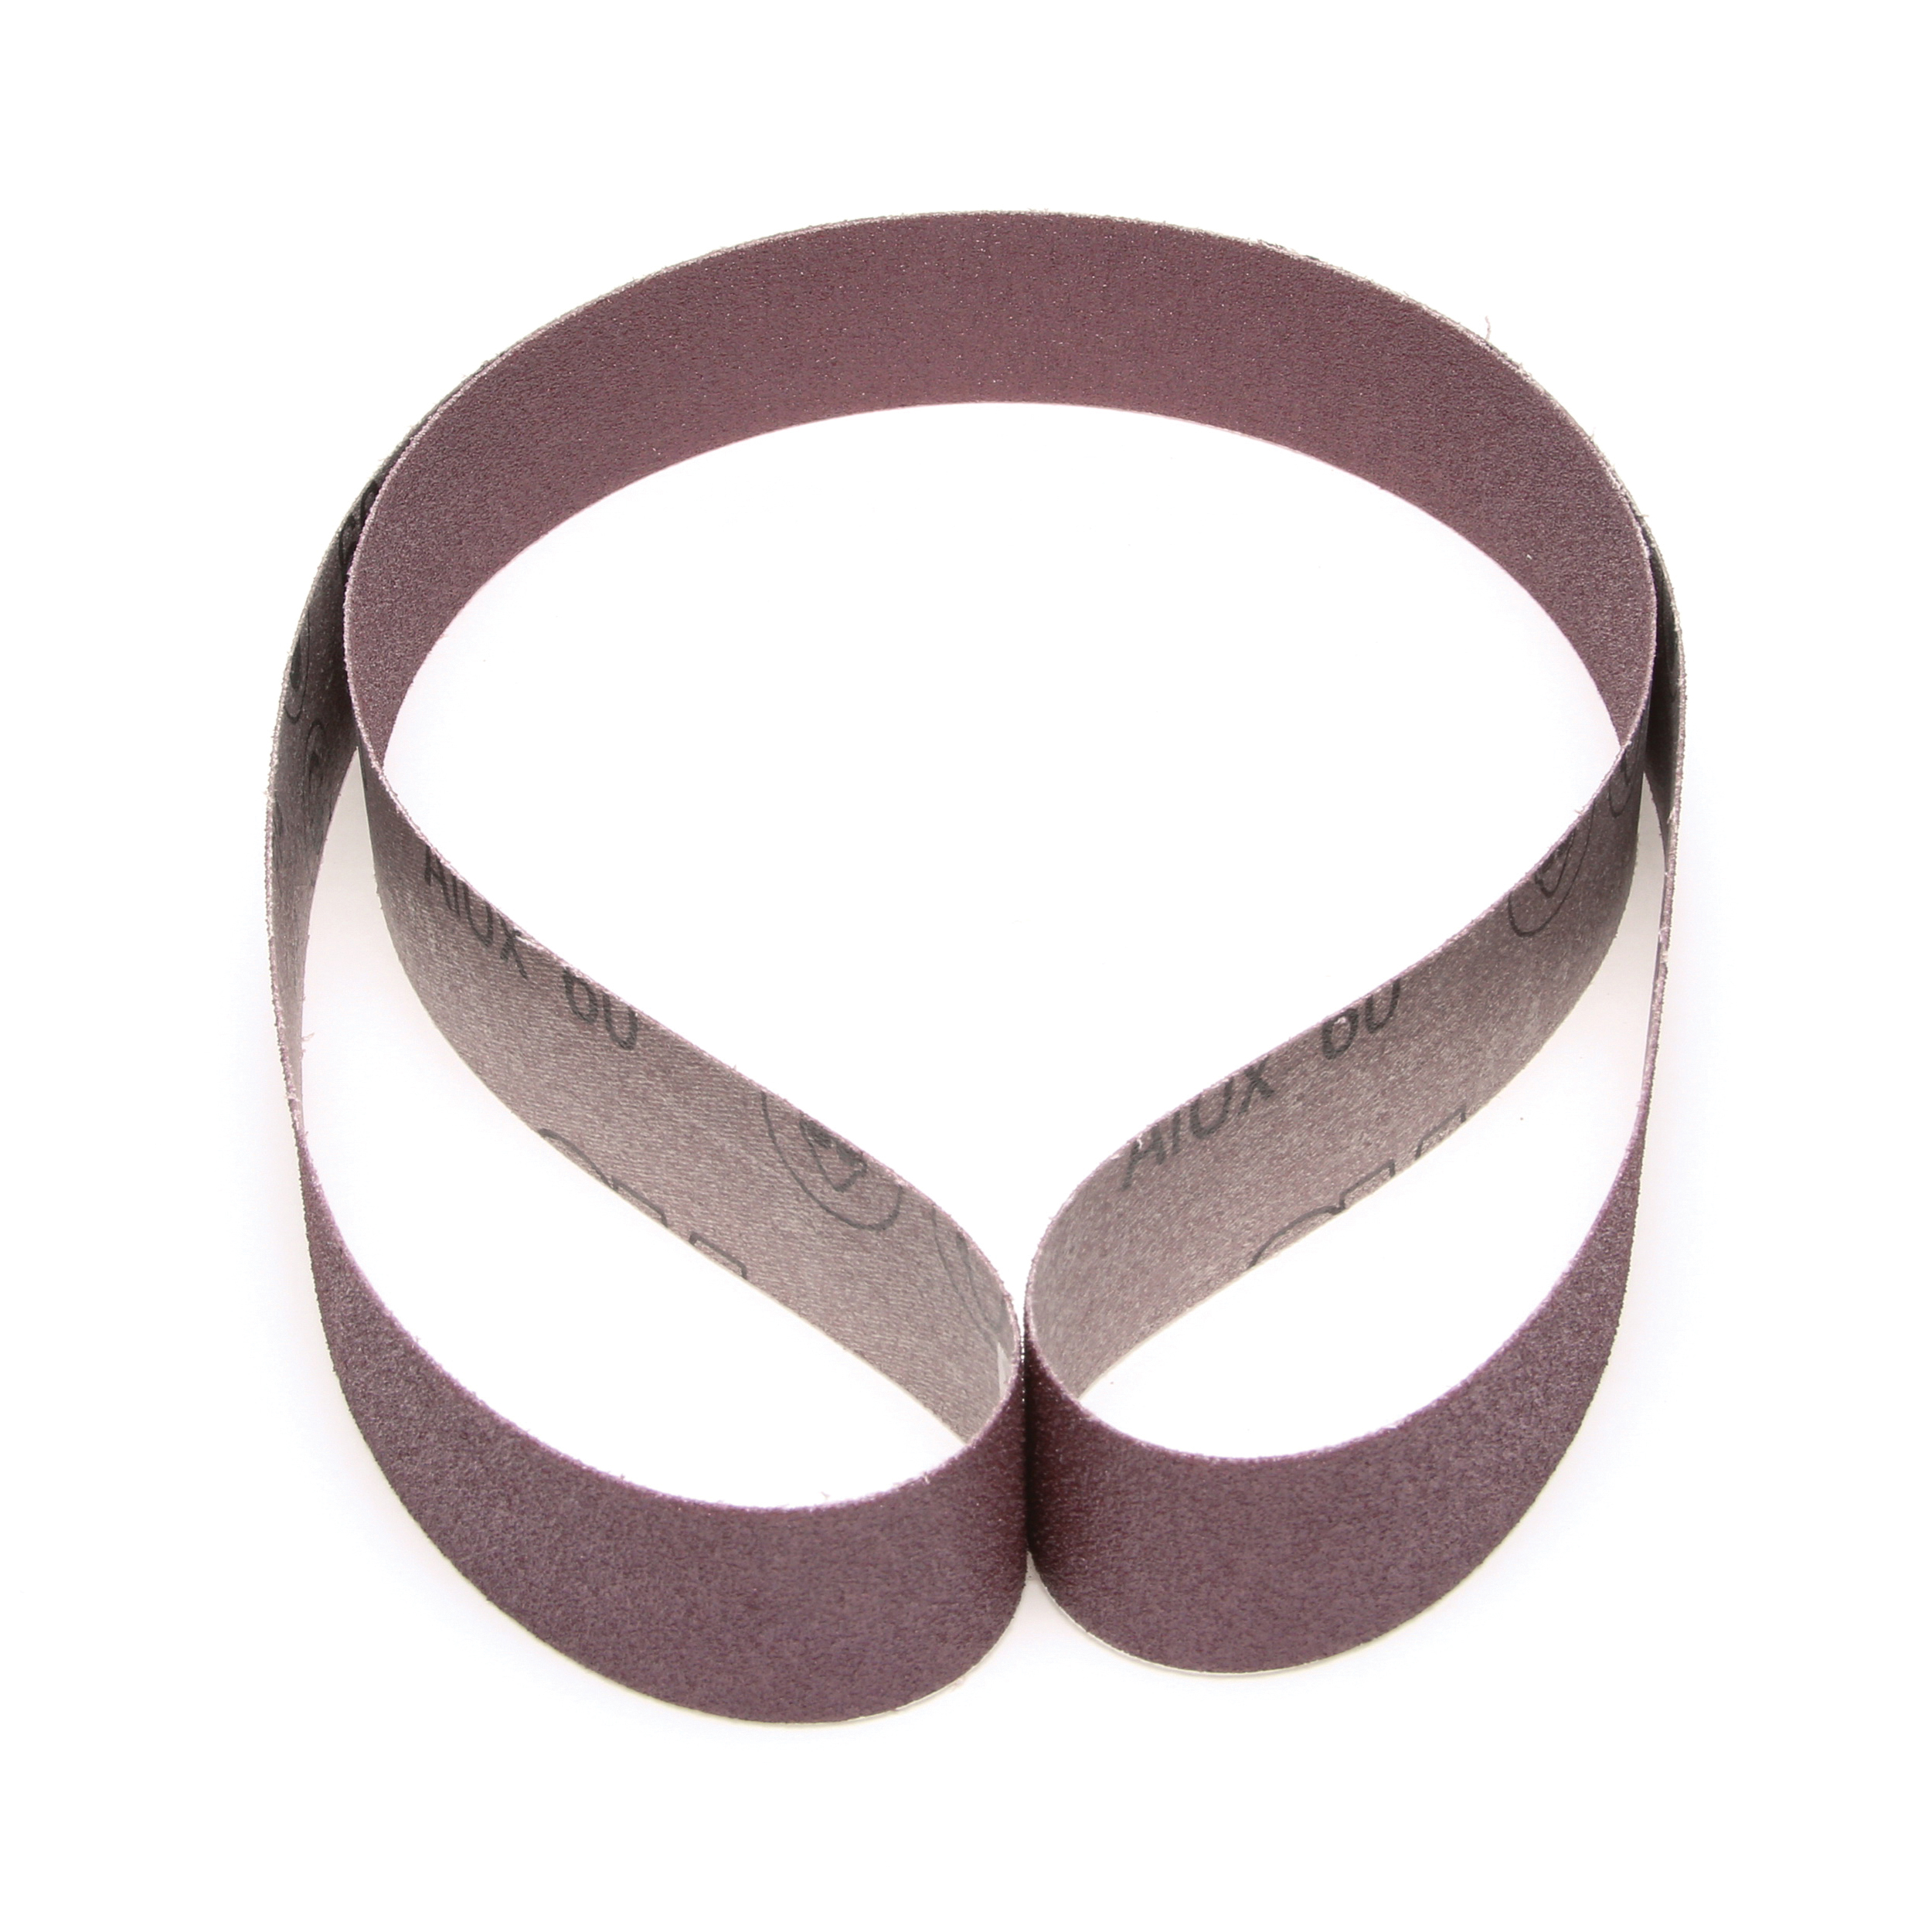 3M™ 051144-26438 Narrow Coated Abrasive Belt, 1-1/2 in W x 60 in L, 60 Grit, Medium Grade, Aluminum Oxide Abrasive, Cloth Backing